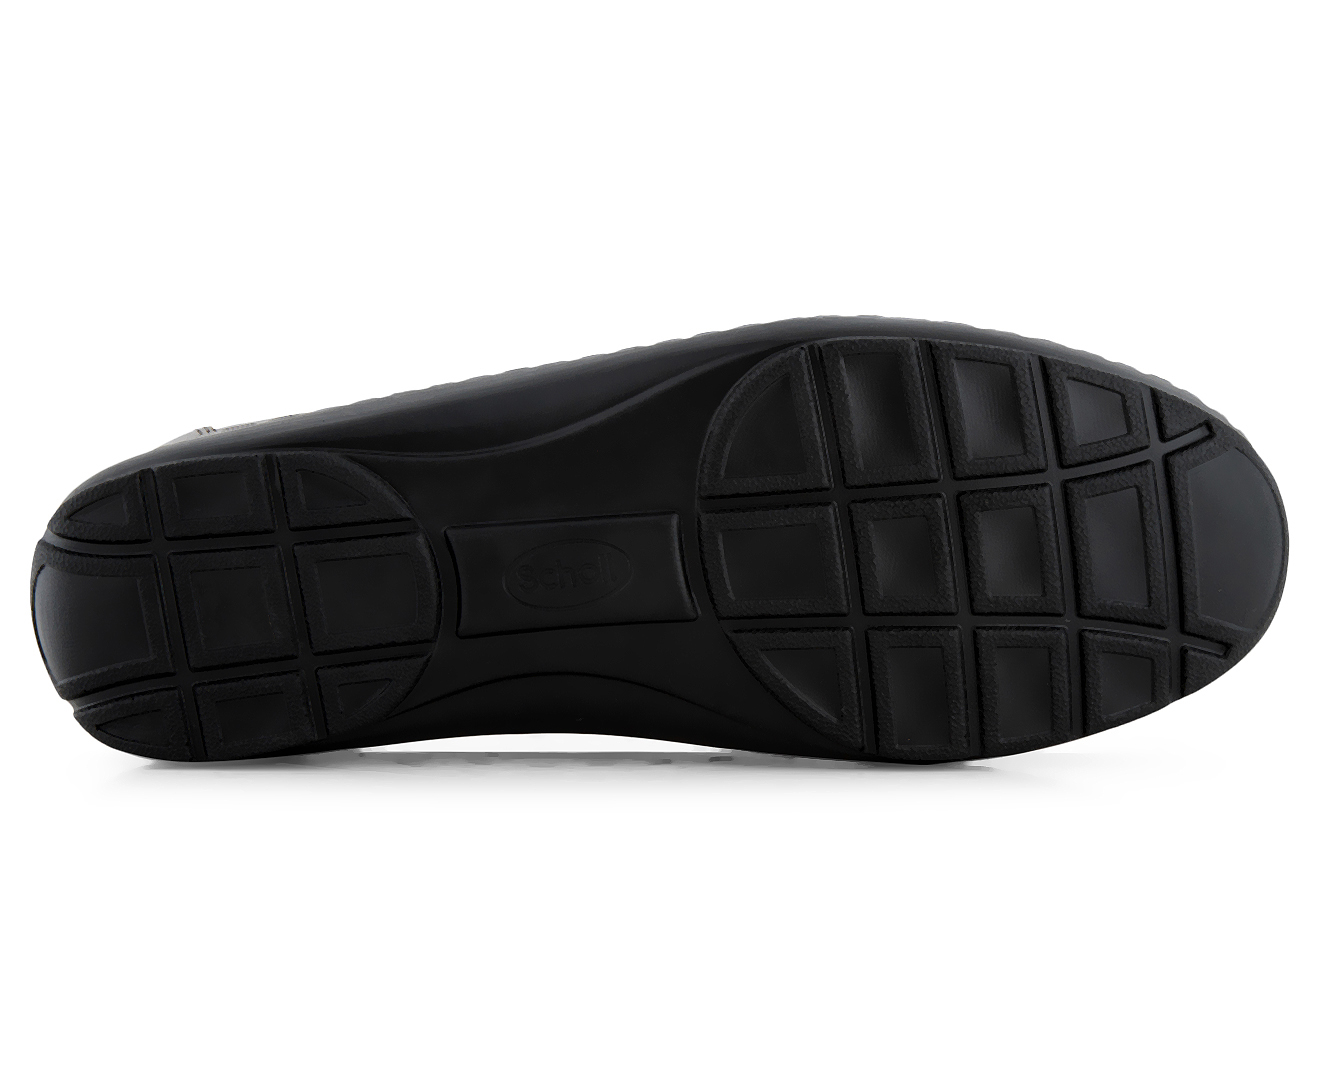 Online Shoe Store For Wide Feet